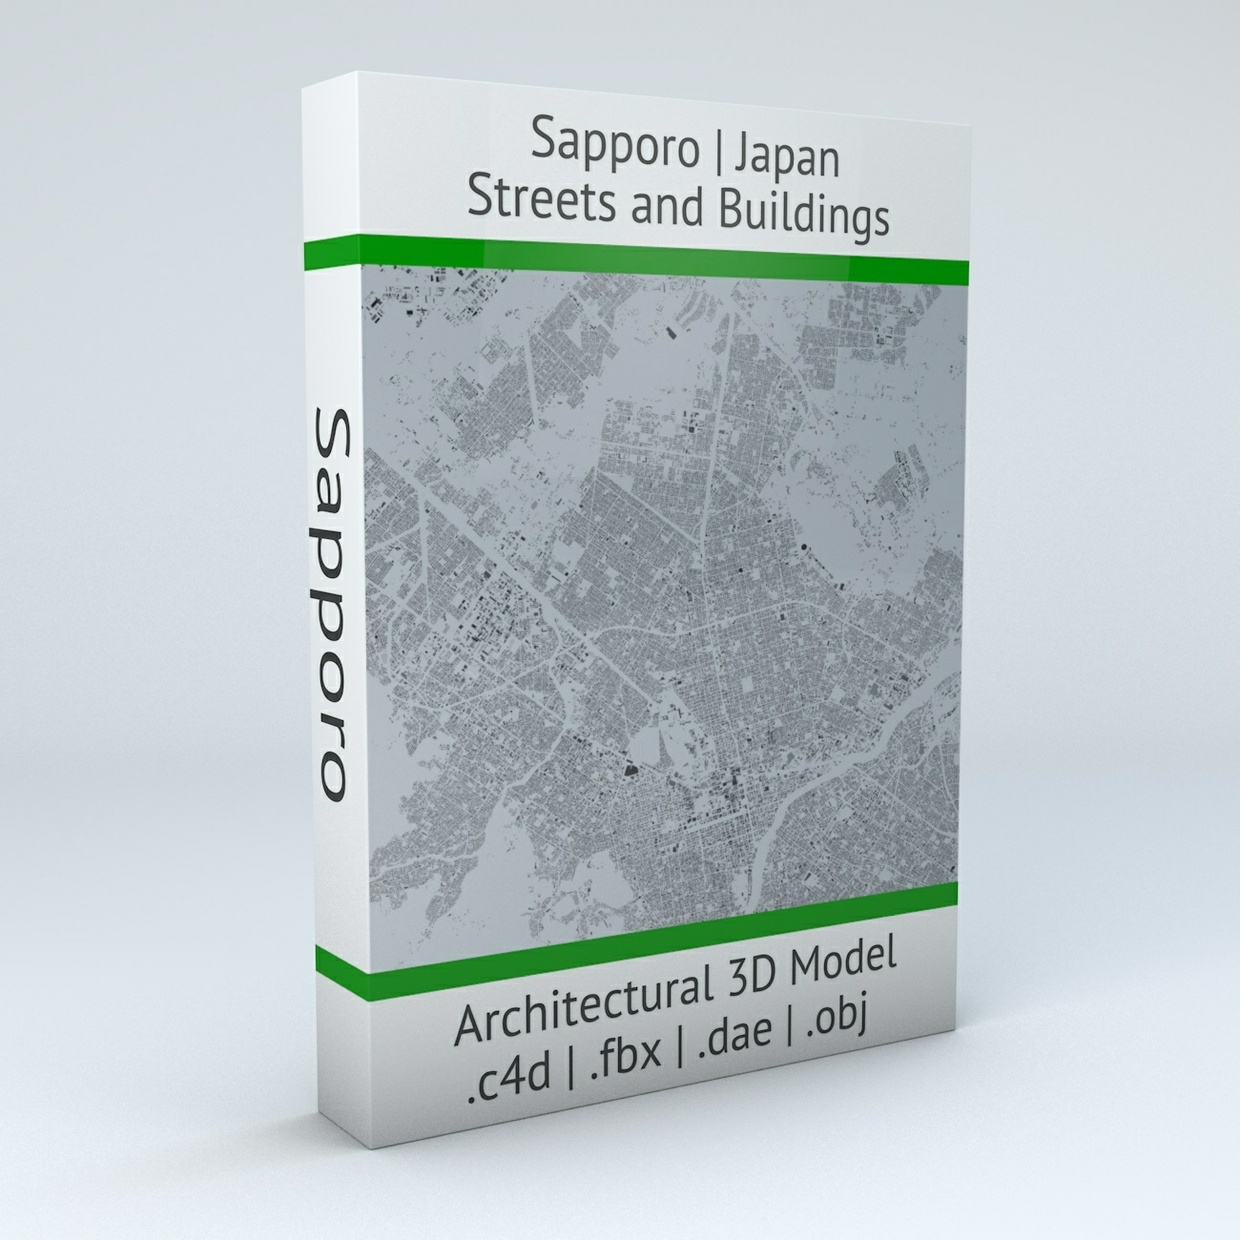 Sapporo Streets and Buildings Architectural 3D Model